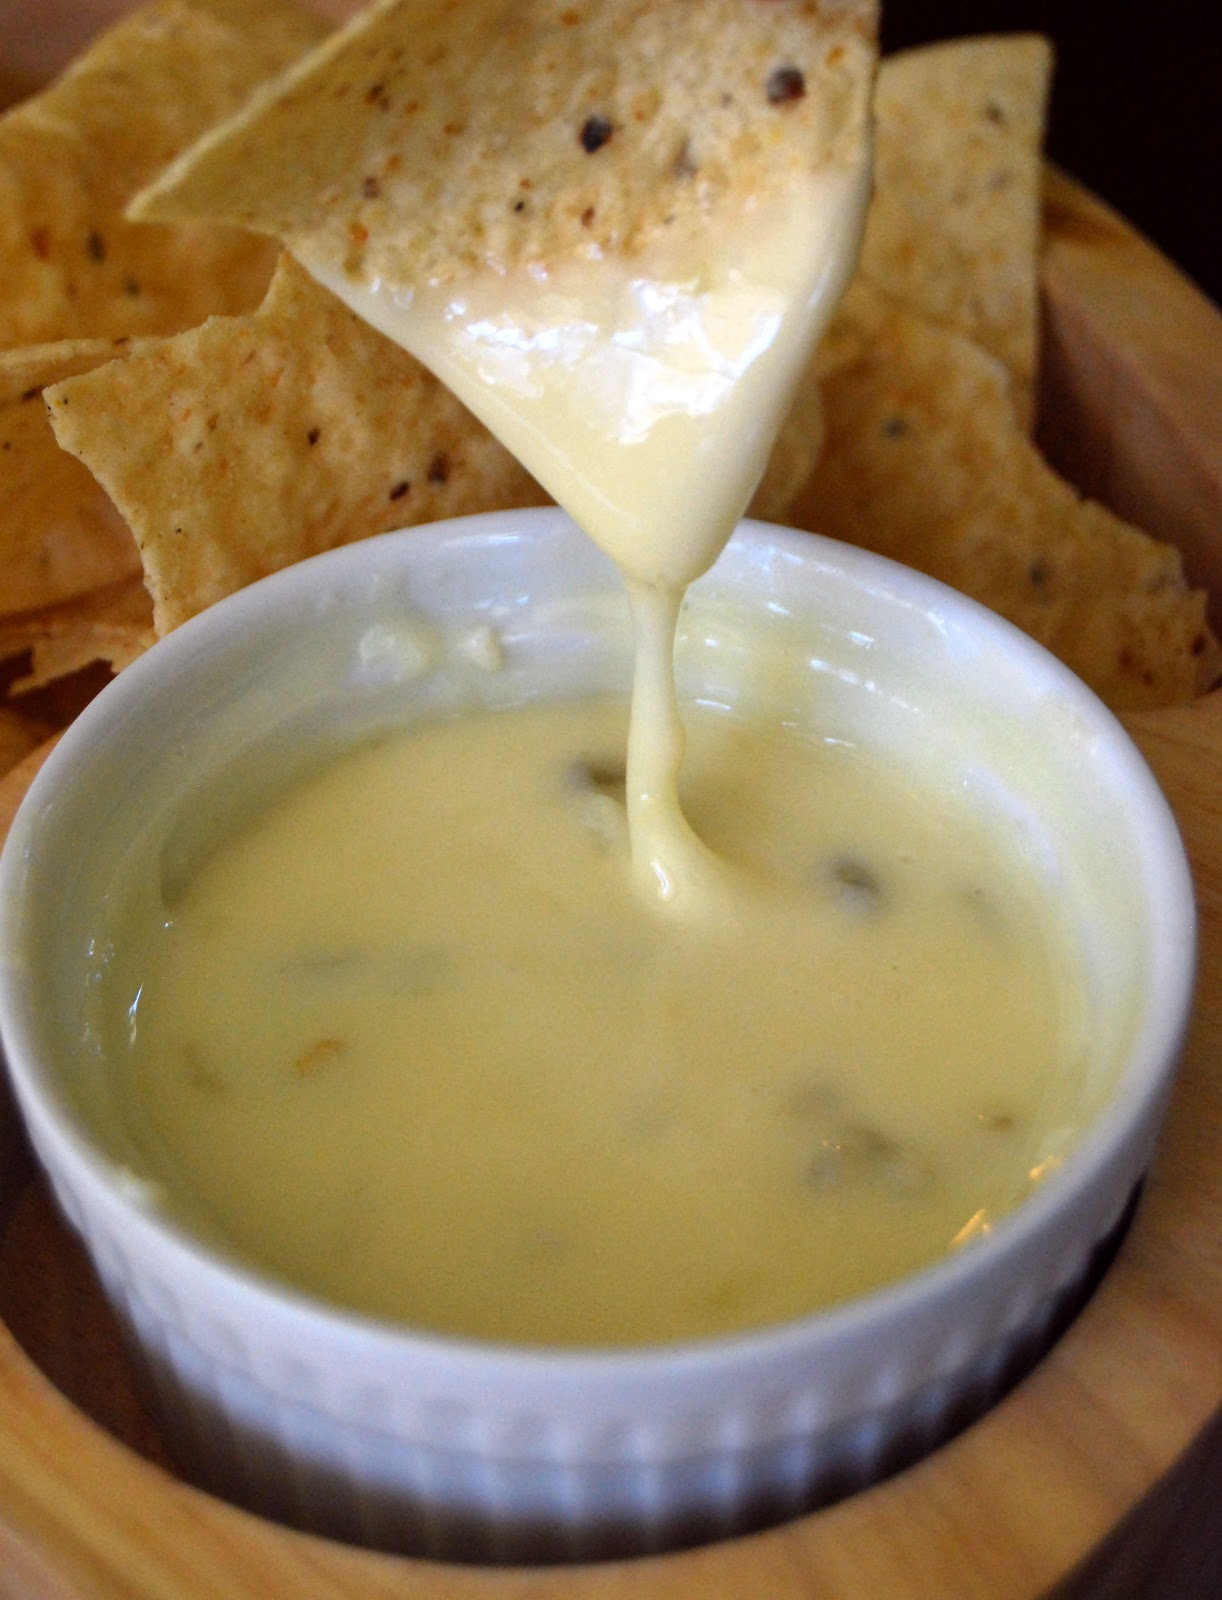 Queso Blanco Dip (White Cheese Dip) | by Life Tastes Good Is one of ...